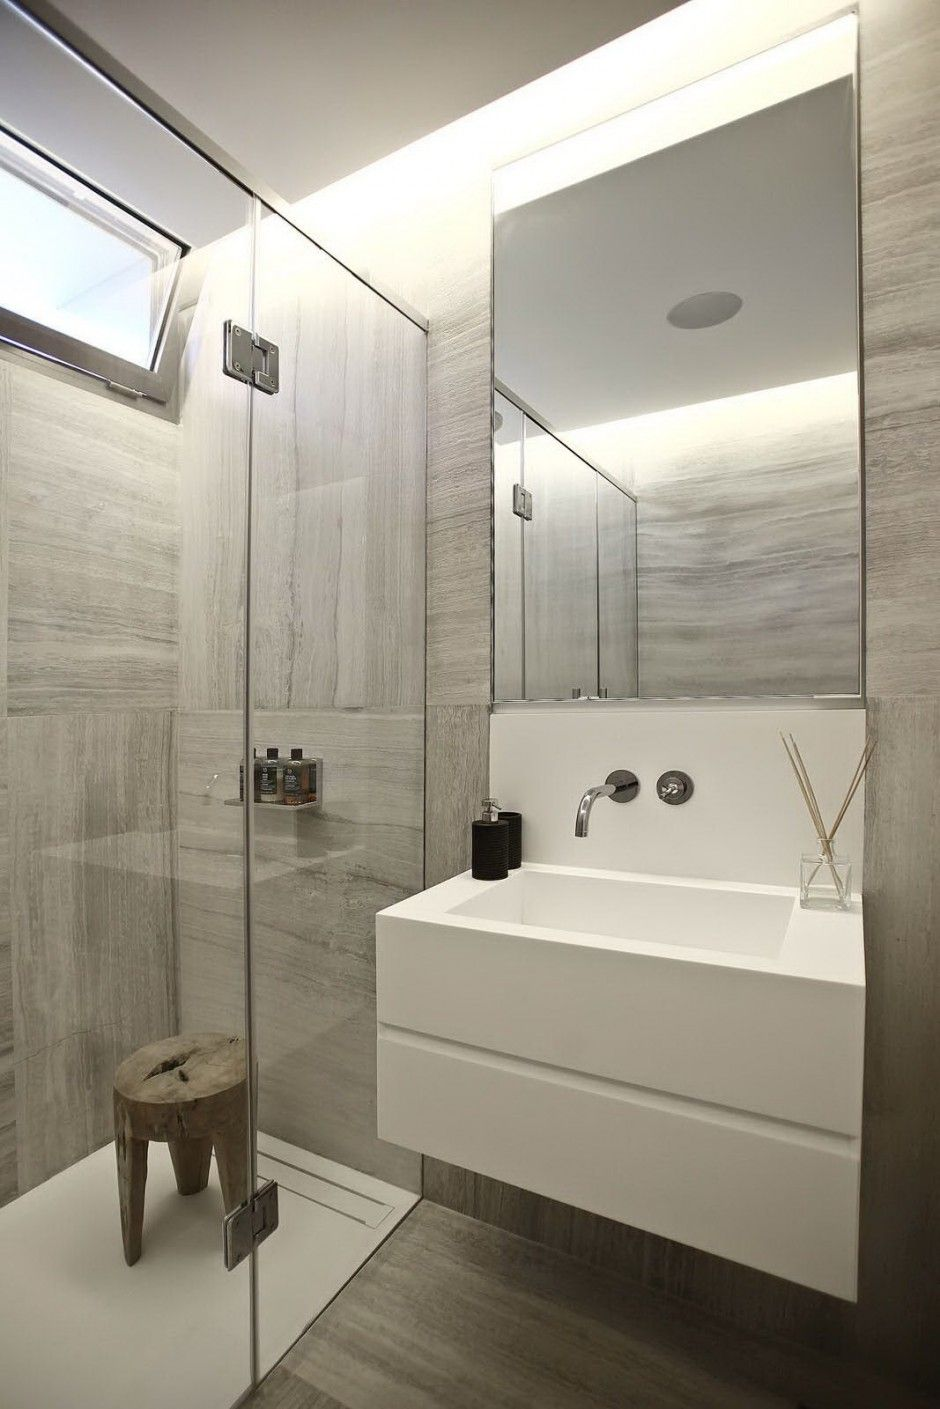 Bathroom Design From S House, Istanbul By Tanju Özelgin | #Bathroom # InteriorDesign | Part 89